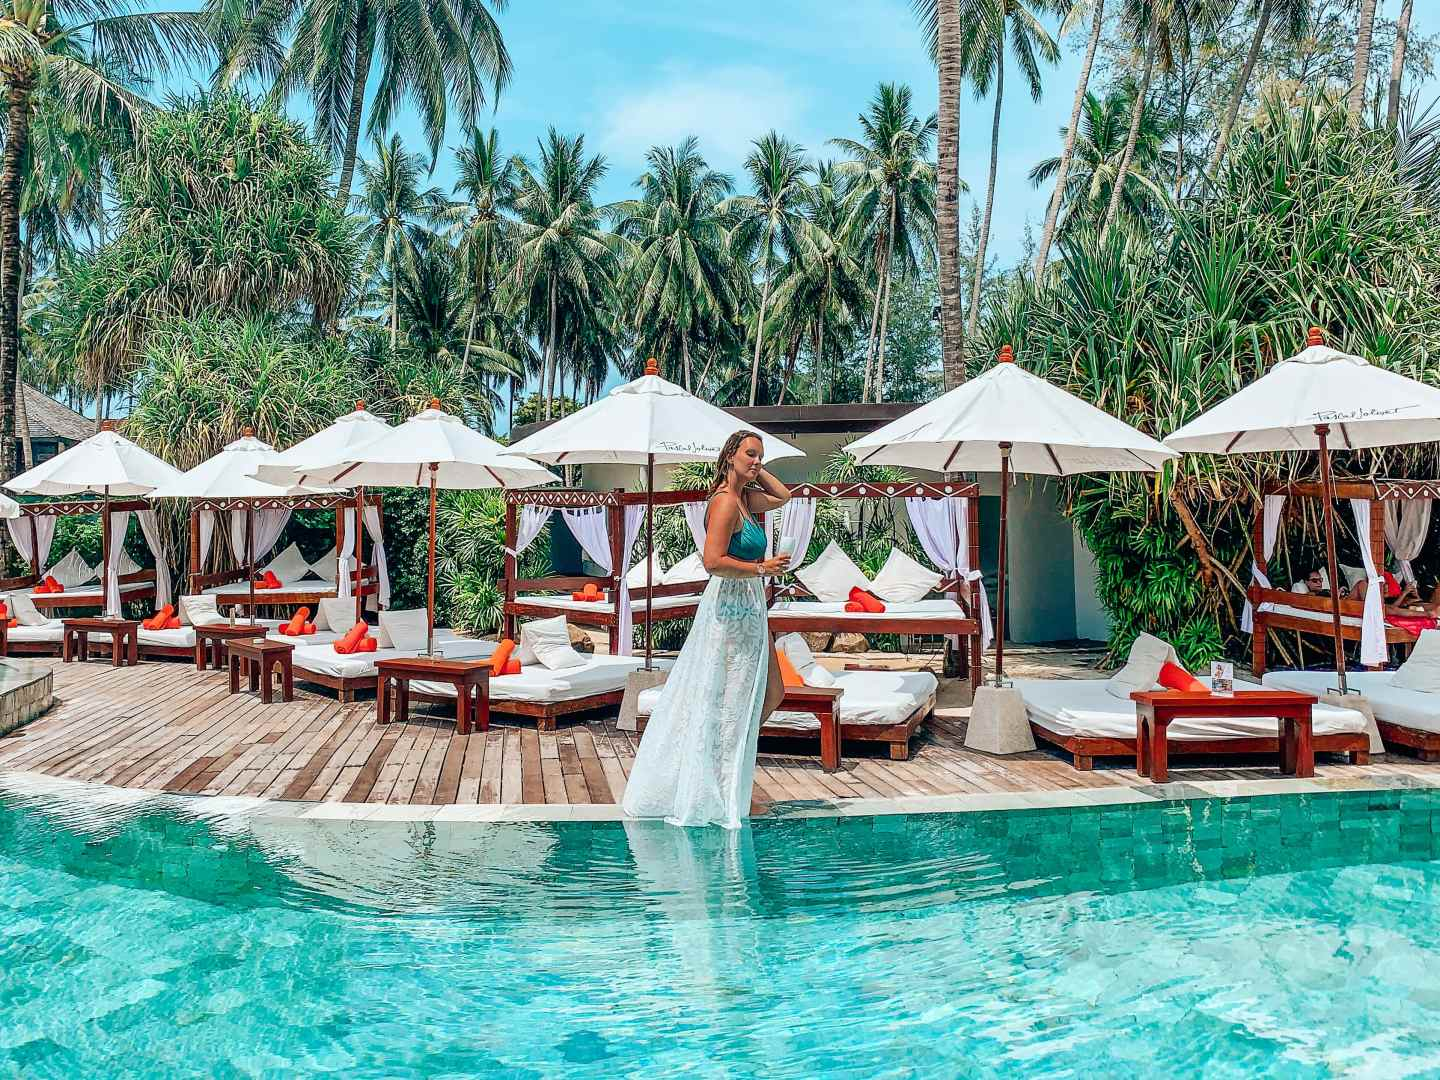 Nikki Beach Koh Samui Hotel Review